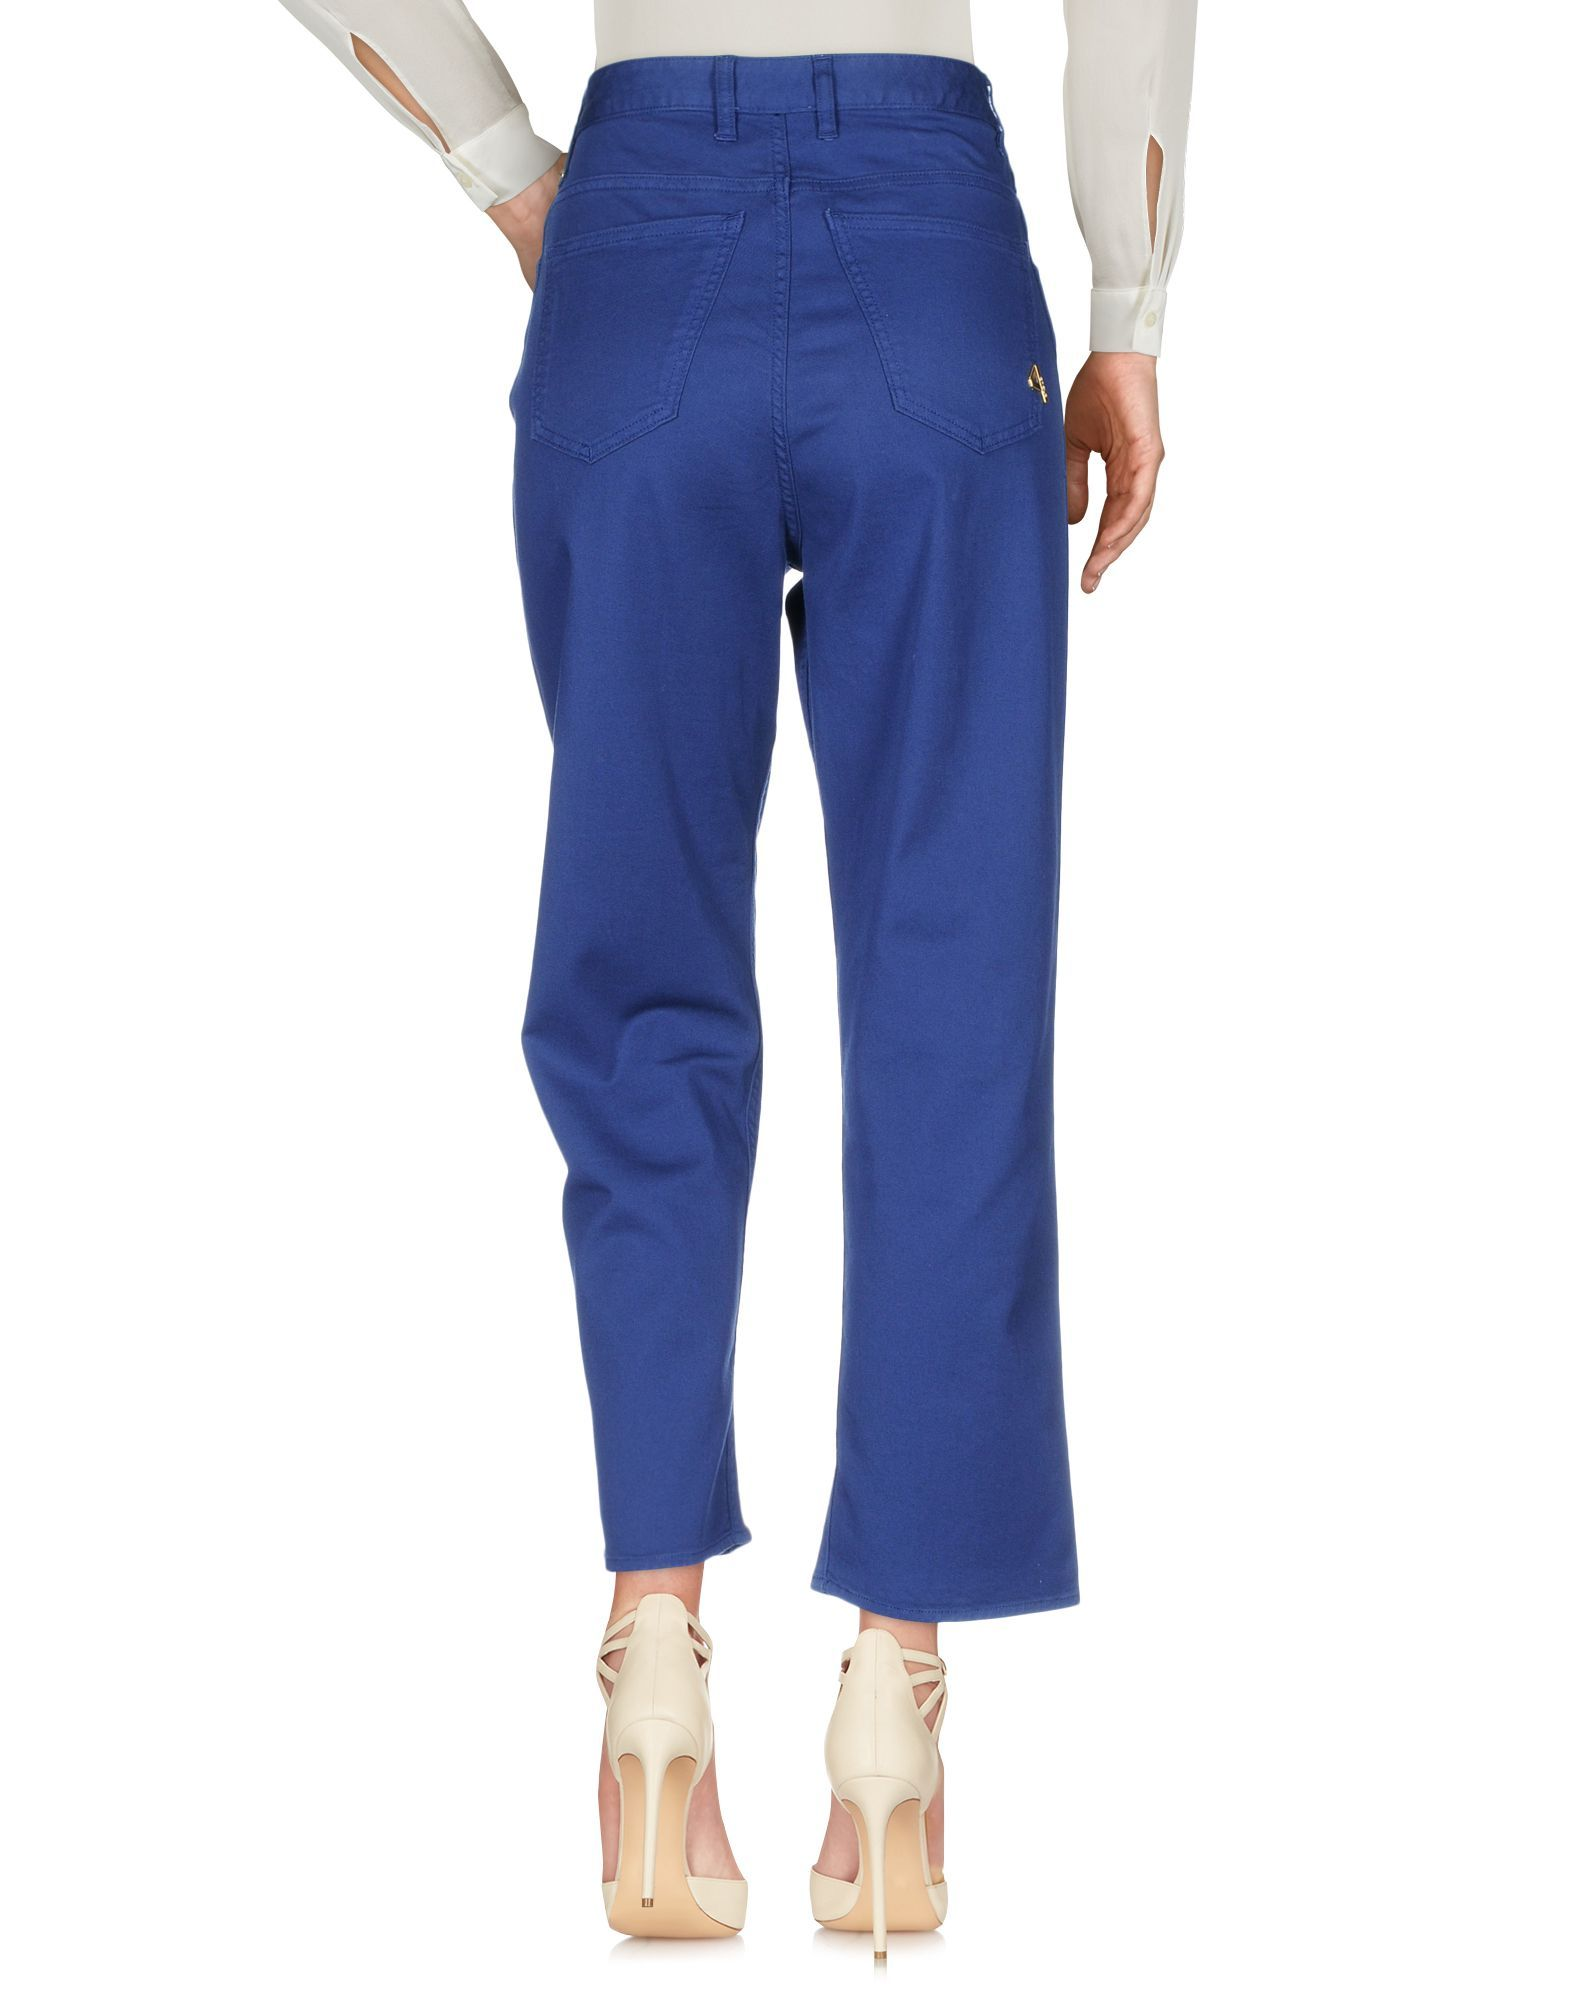 Trousers Women's Cycle Blue Cotton